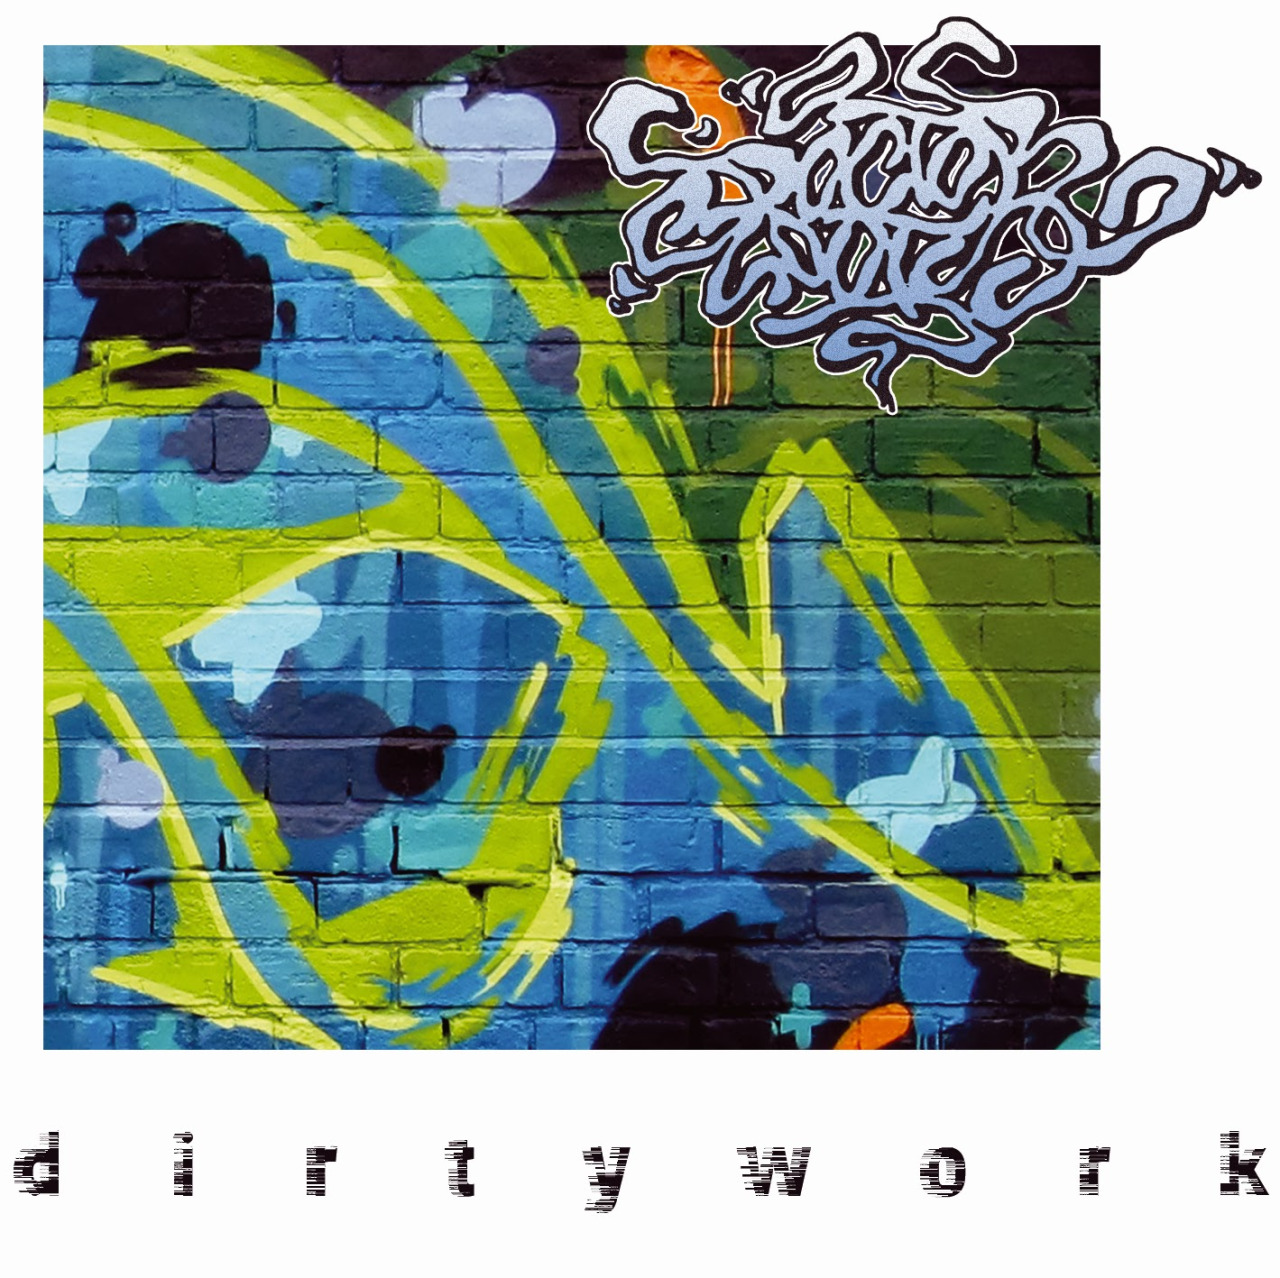 DOCTOR ZOOTS - DIRTYWORK  So the co-founder of Holdin' Court just dropped his latest album, almost entirely produced by the other half of The Underwater Brothers, Fish PWS.  After a series of let downs, hangovers, name changes, dead hard drives, police raids and other such nonsense the new Doctor Zoot album is  finally  seeing the light of day!!   It's here, it's waiting for you to download it, or at least stream it from   Antisocial Music  .  Enjoy!